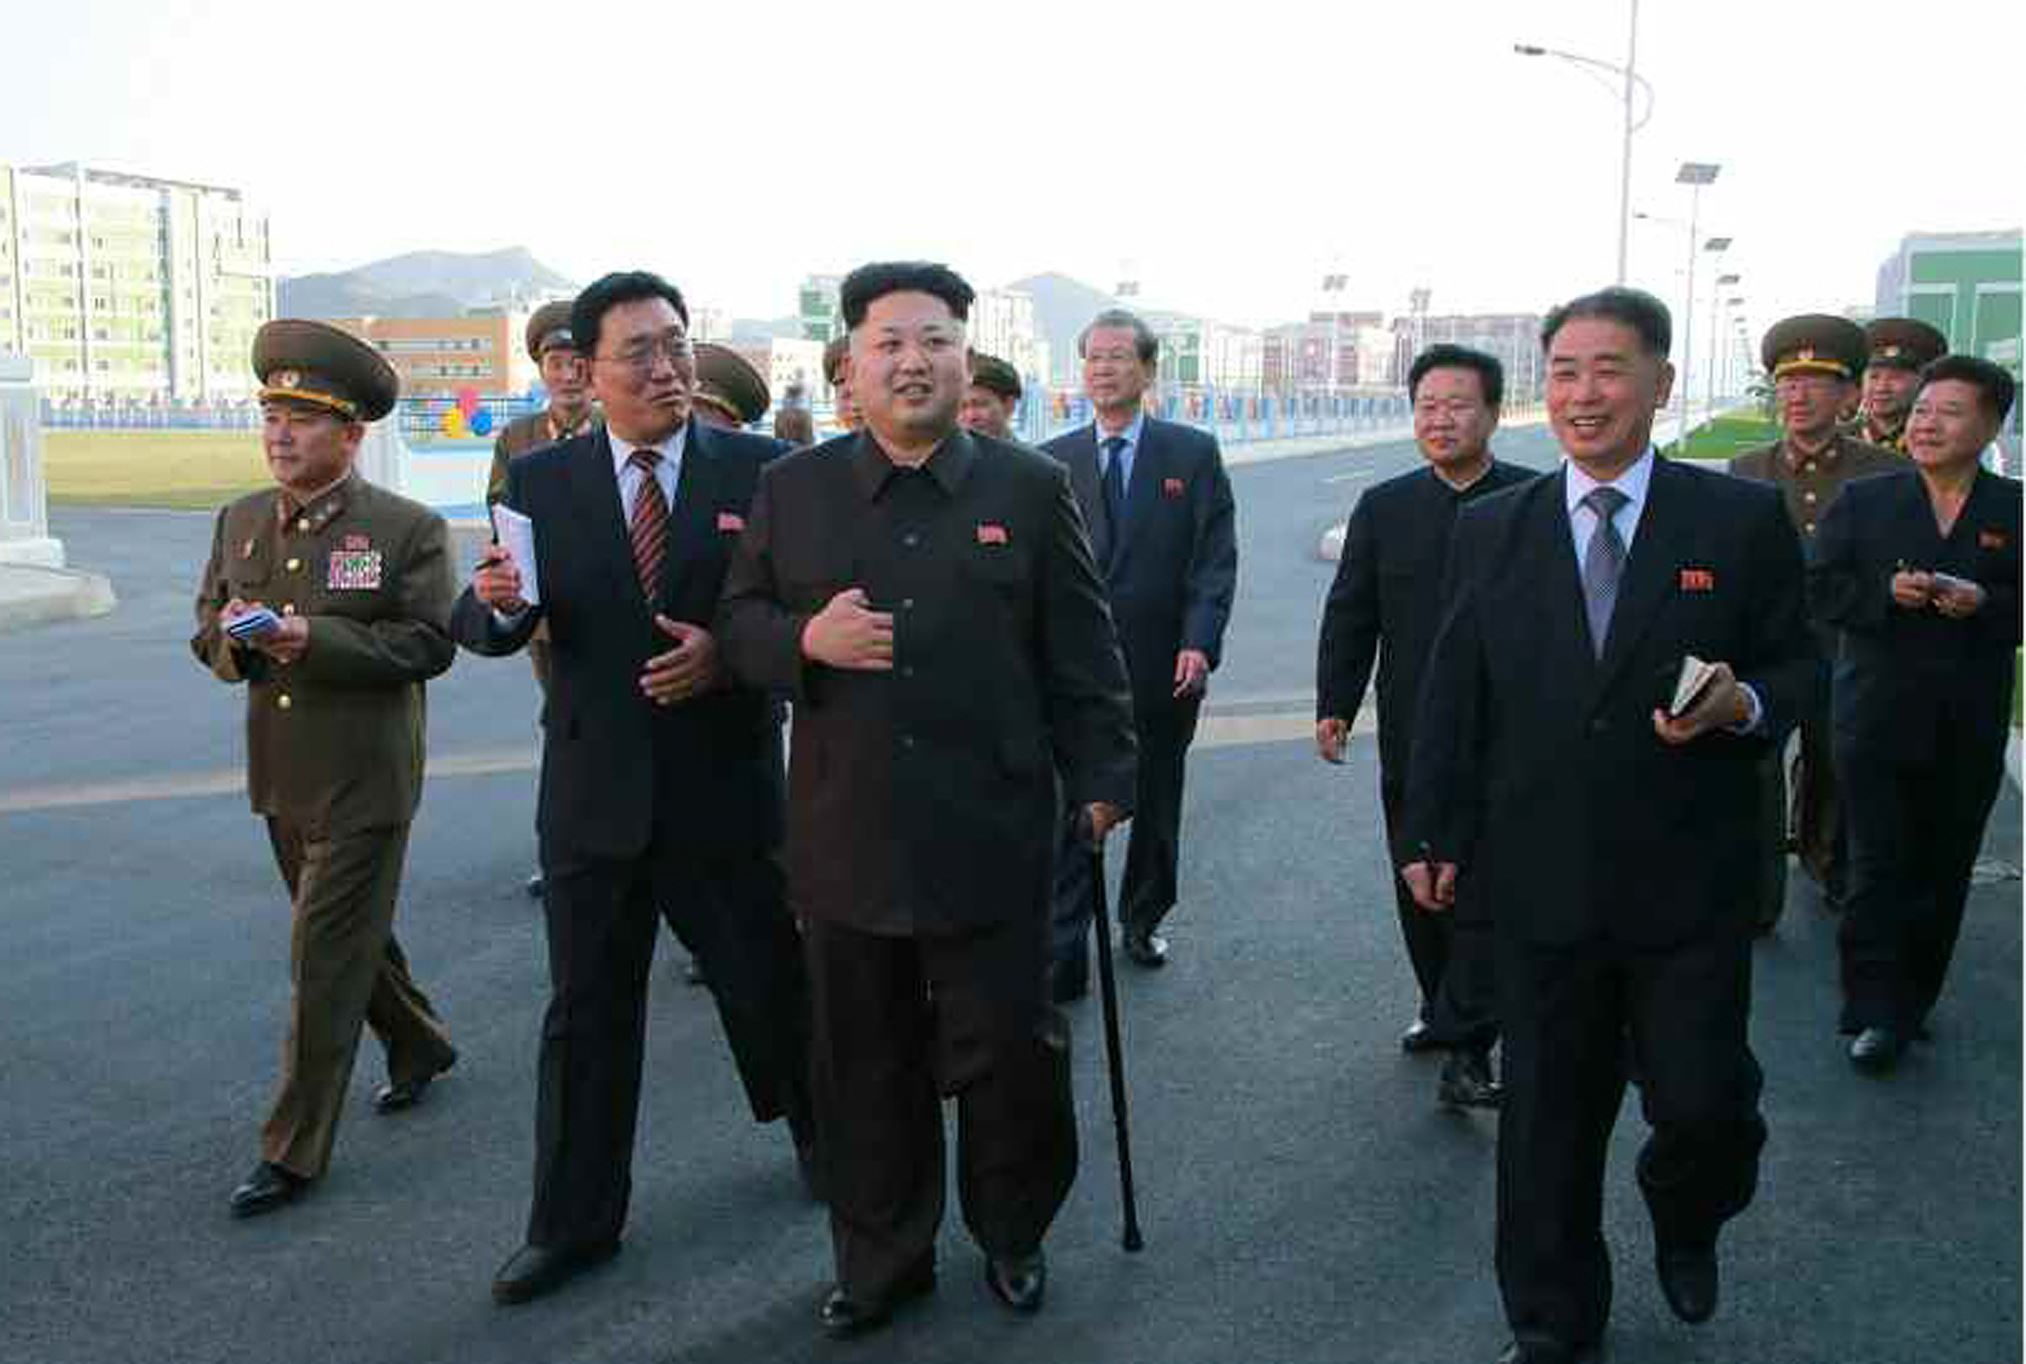 Speculations about the reason for the North Korean leader's absence are put to rest as he visited to the Wisong Scientists Residential District in Pyongyang, North Korea, on October 13th, 2014.